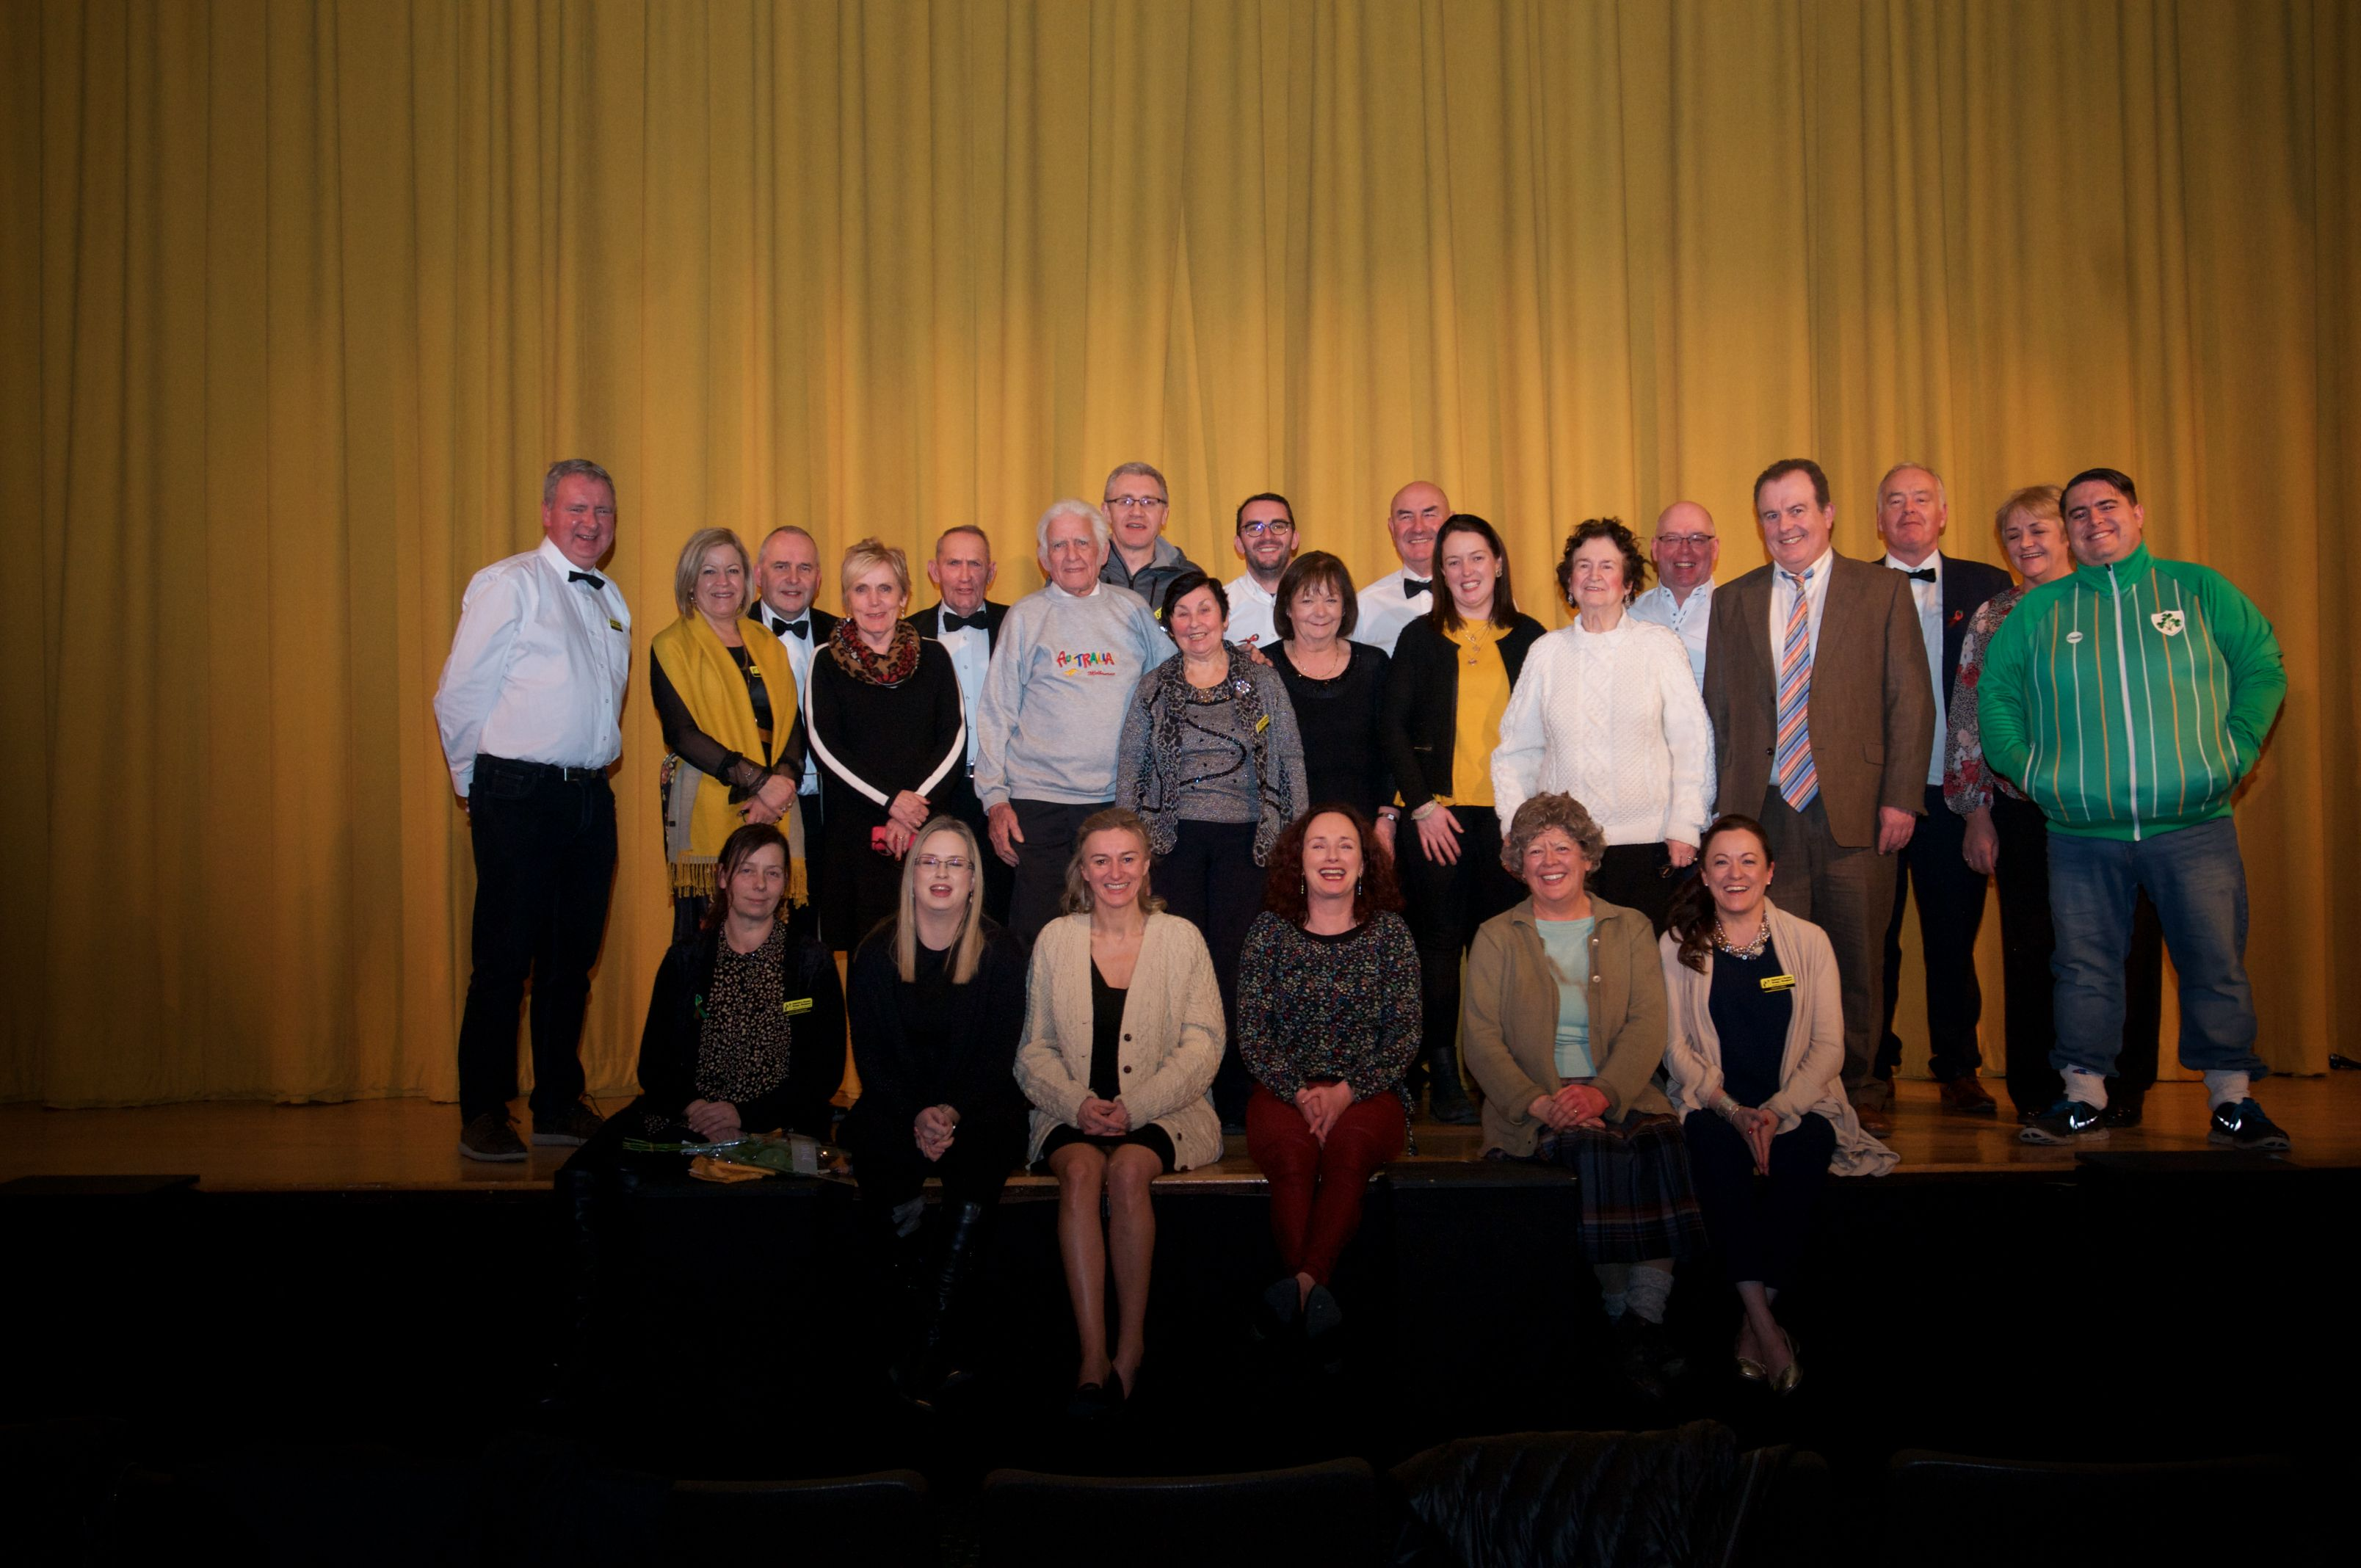 Wesport Drama Group Visits Chicago with production of 'Beauty Queen of Leenane' at Heritage Center